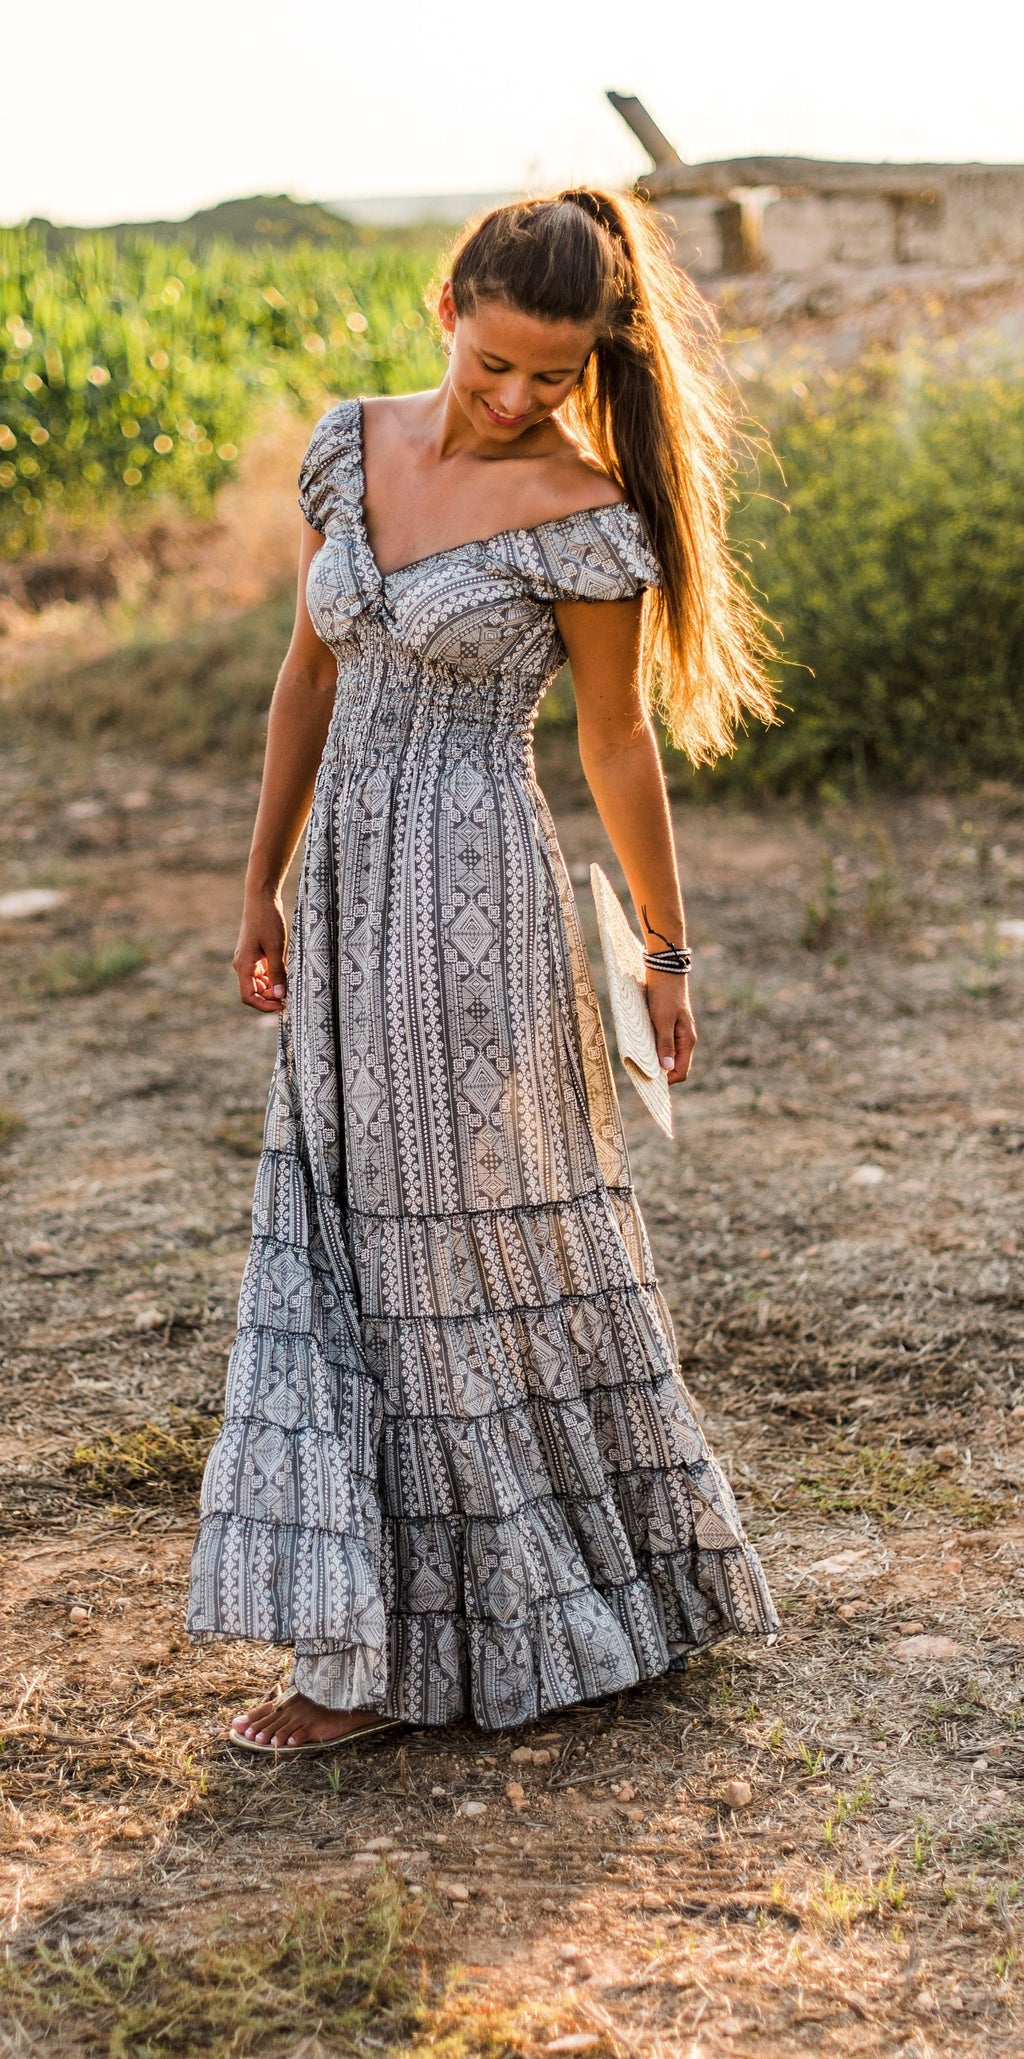 resort wear bohemian resort dress cruise wear paisley boho dress